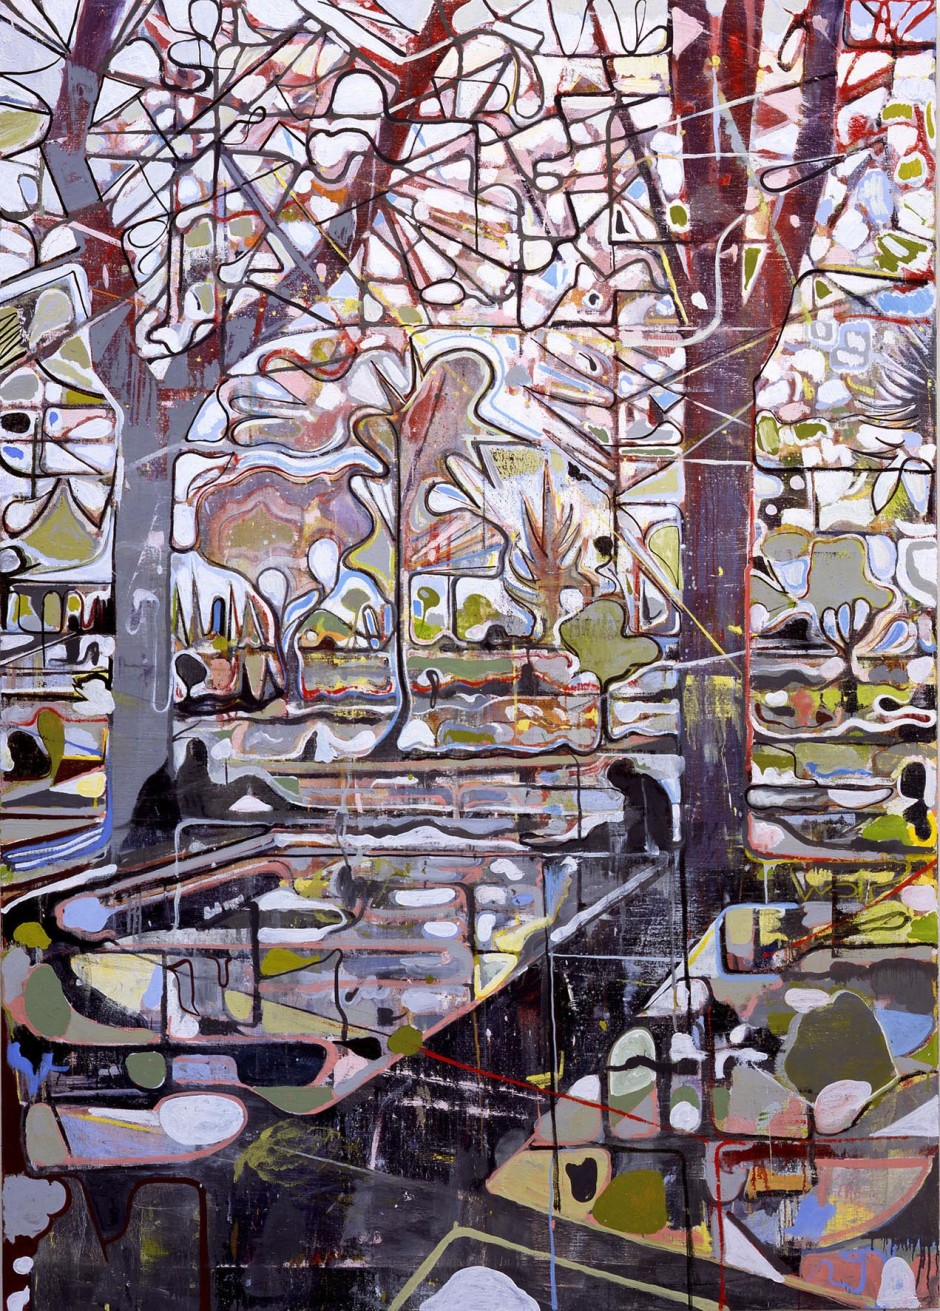 Untitled (Union Square Park, 2 figures), 2006  oil on linen  172.72 x 243.84 cm 68 x 96 in.